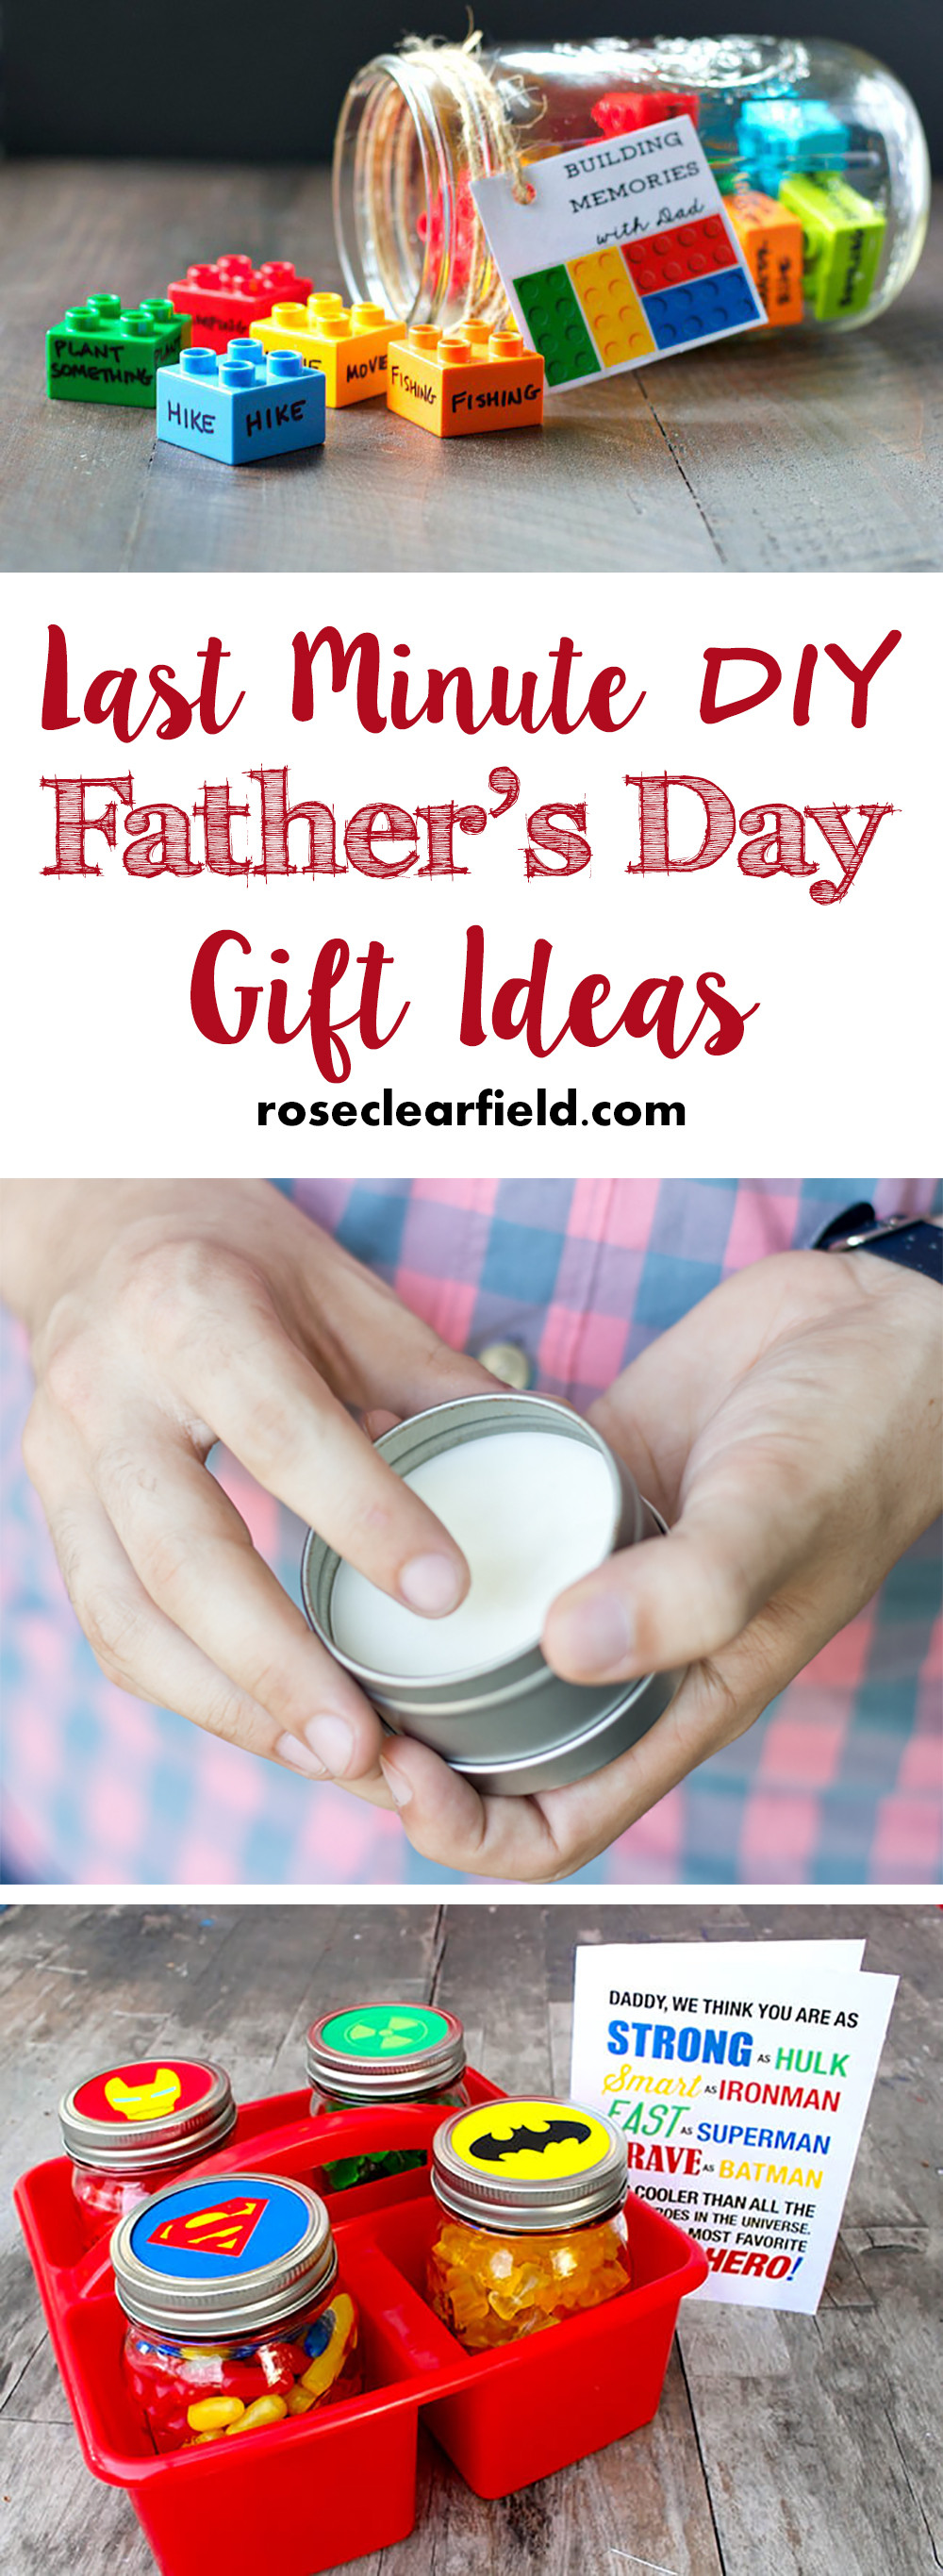 Diy Father'S Day Gift Ideas  Last Minute DIY Father s Day Gift Ideas • Rose Clearfield